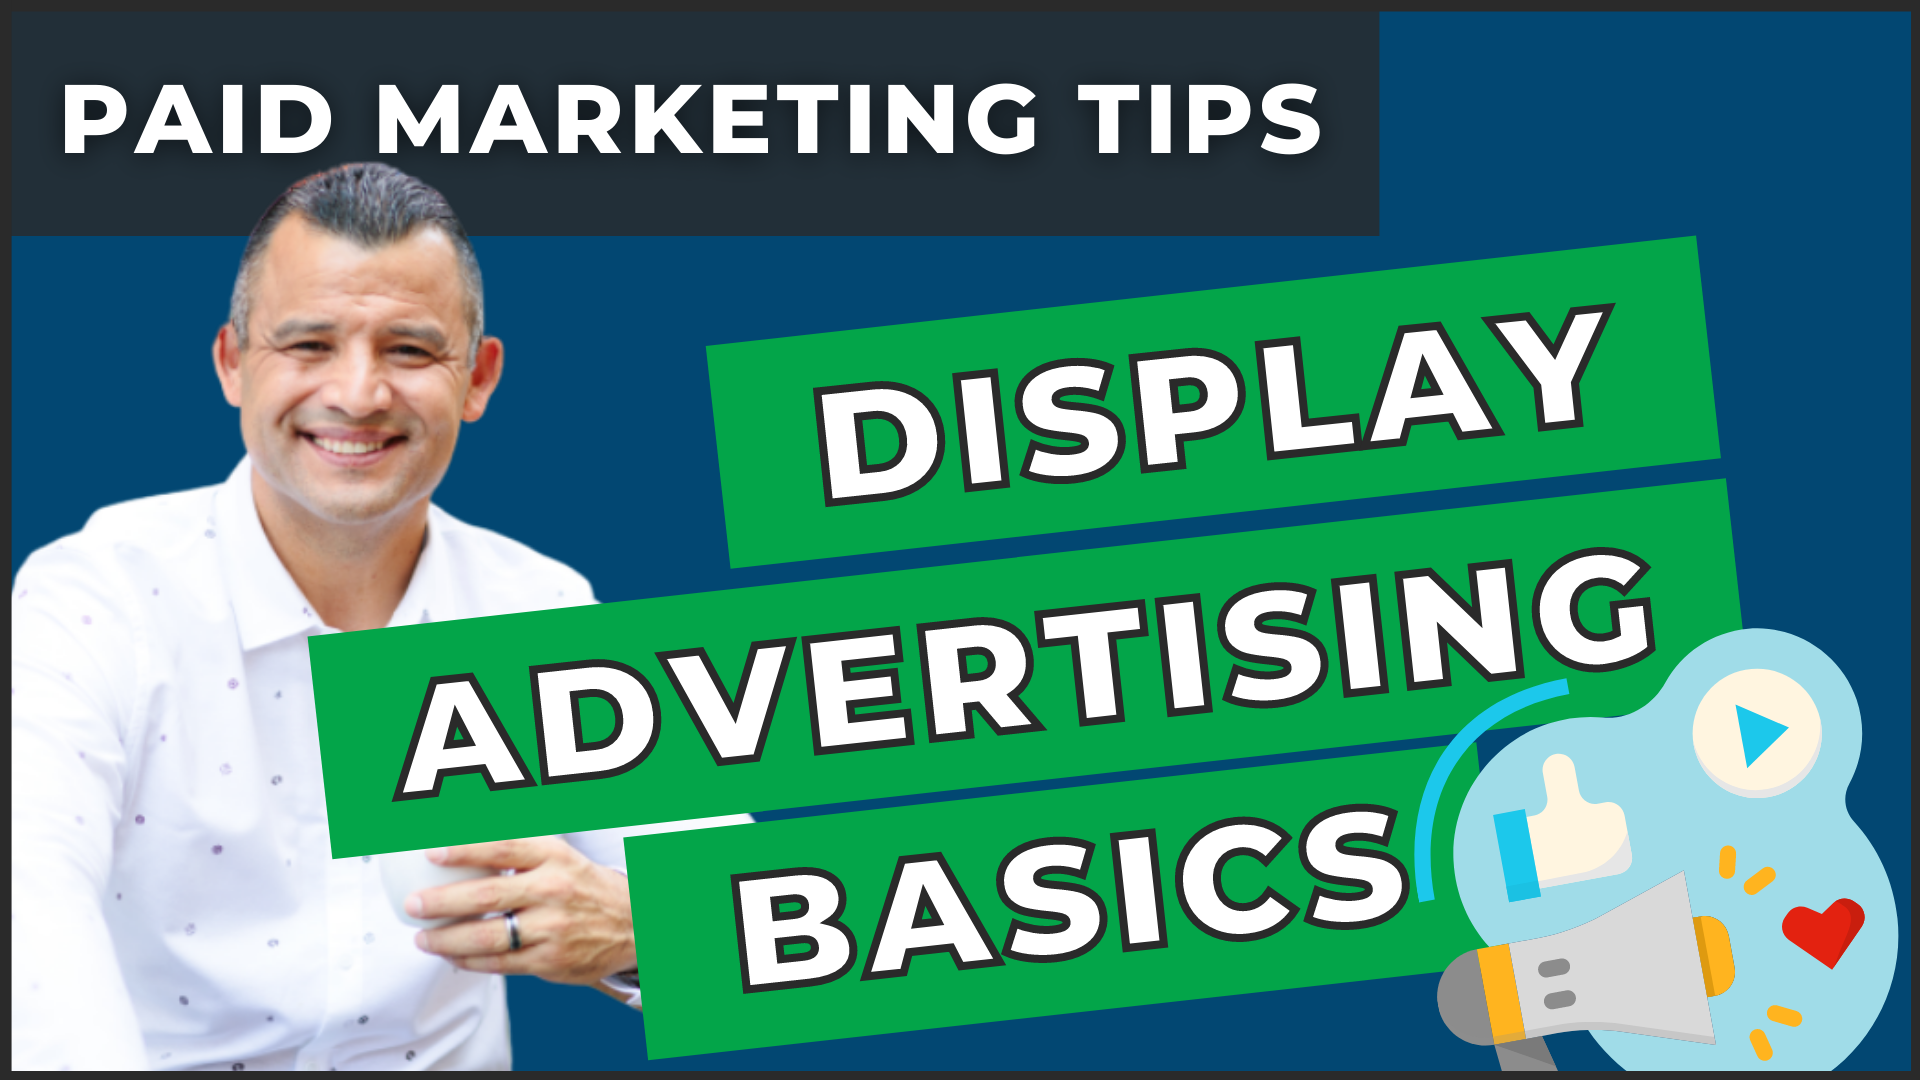 Display Advertising Basics How To Get Started!